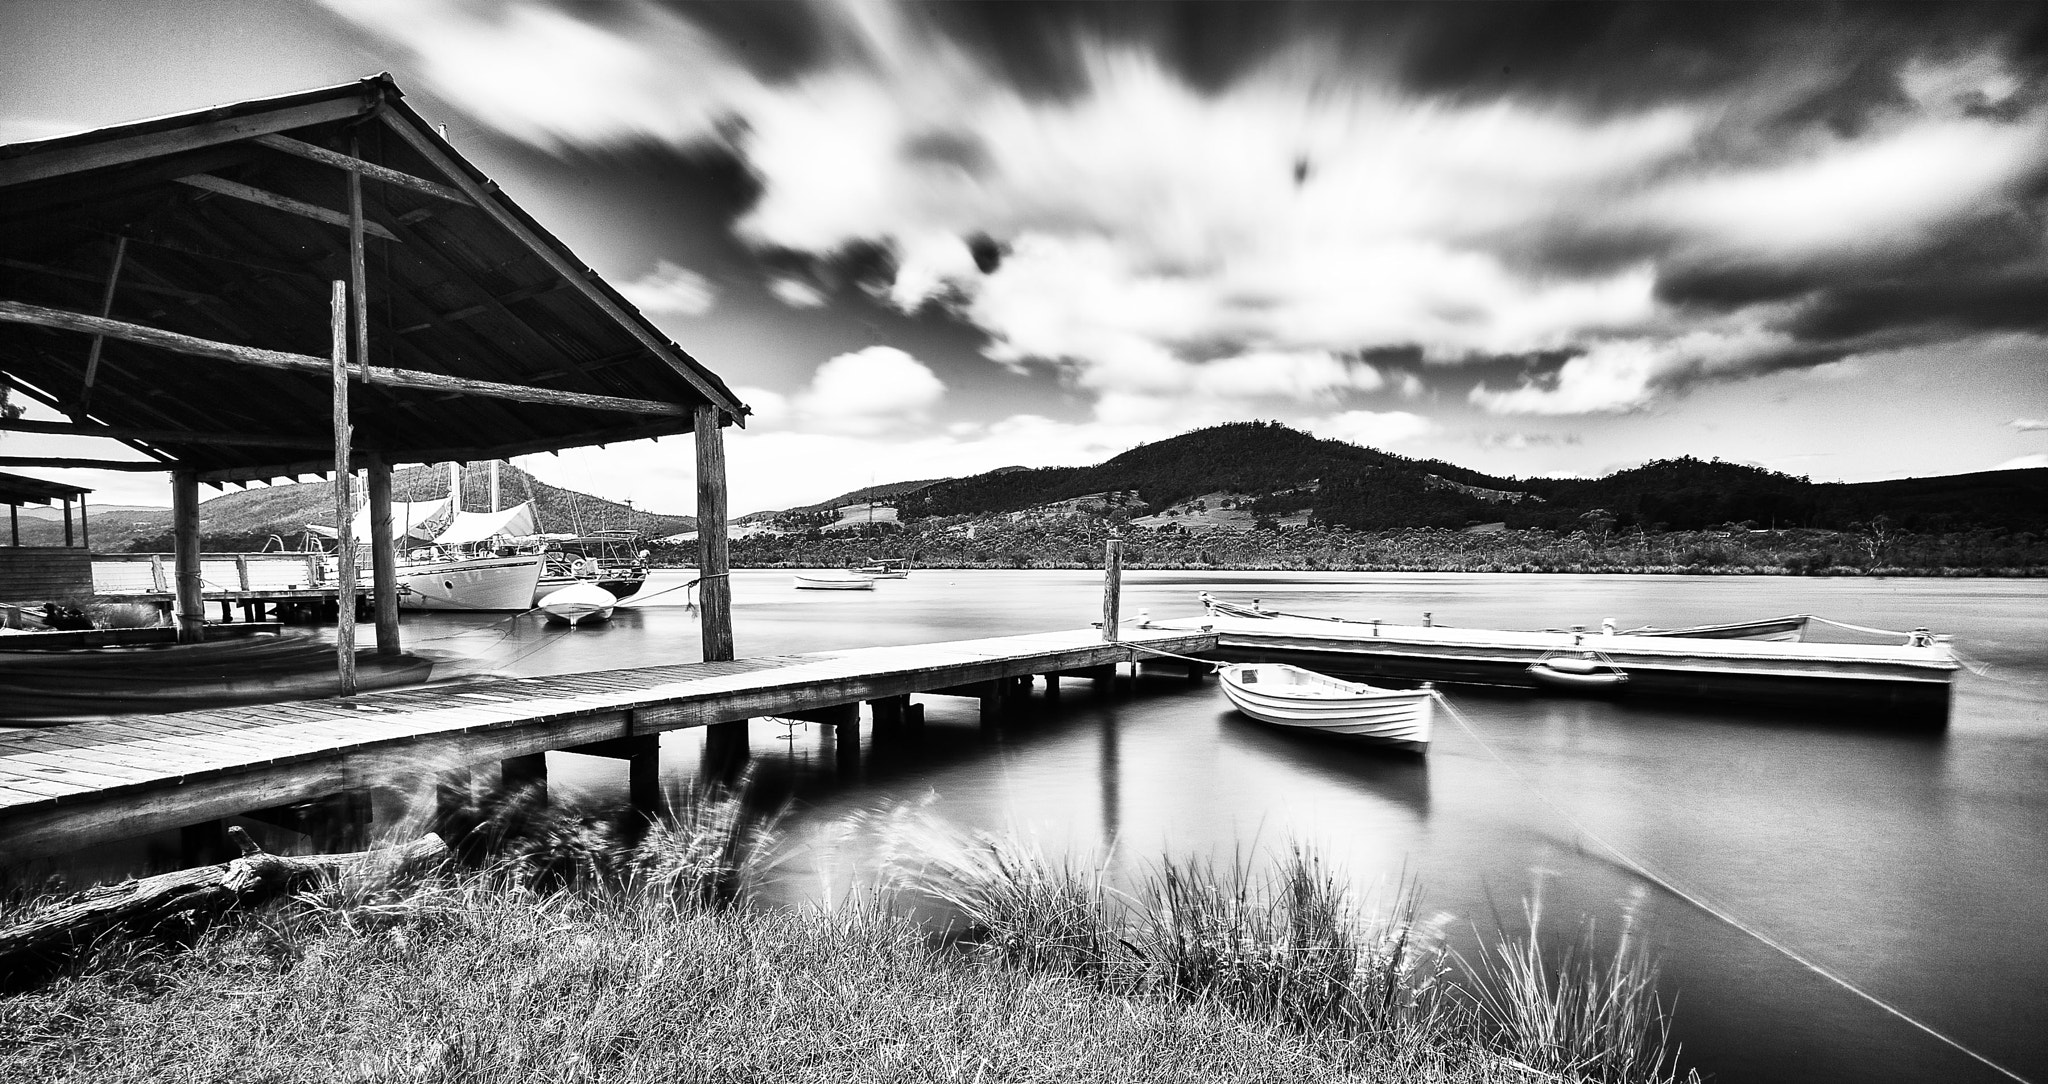 Photograph Franklin Boat Ramp by Margaret Morgan on 500px